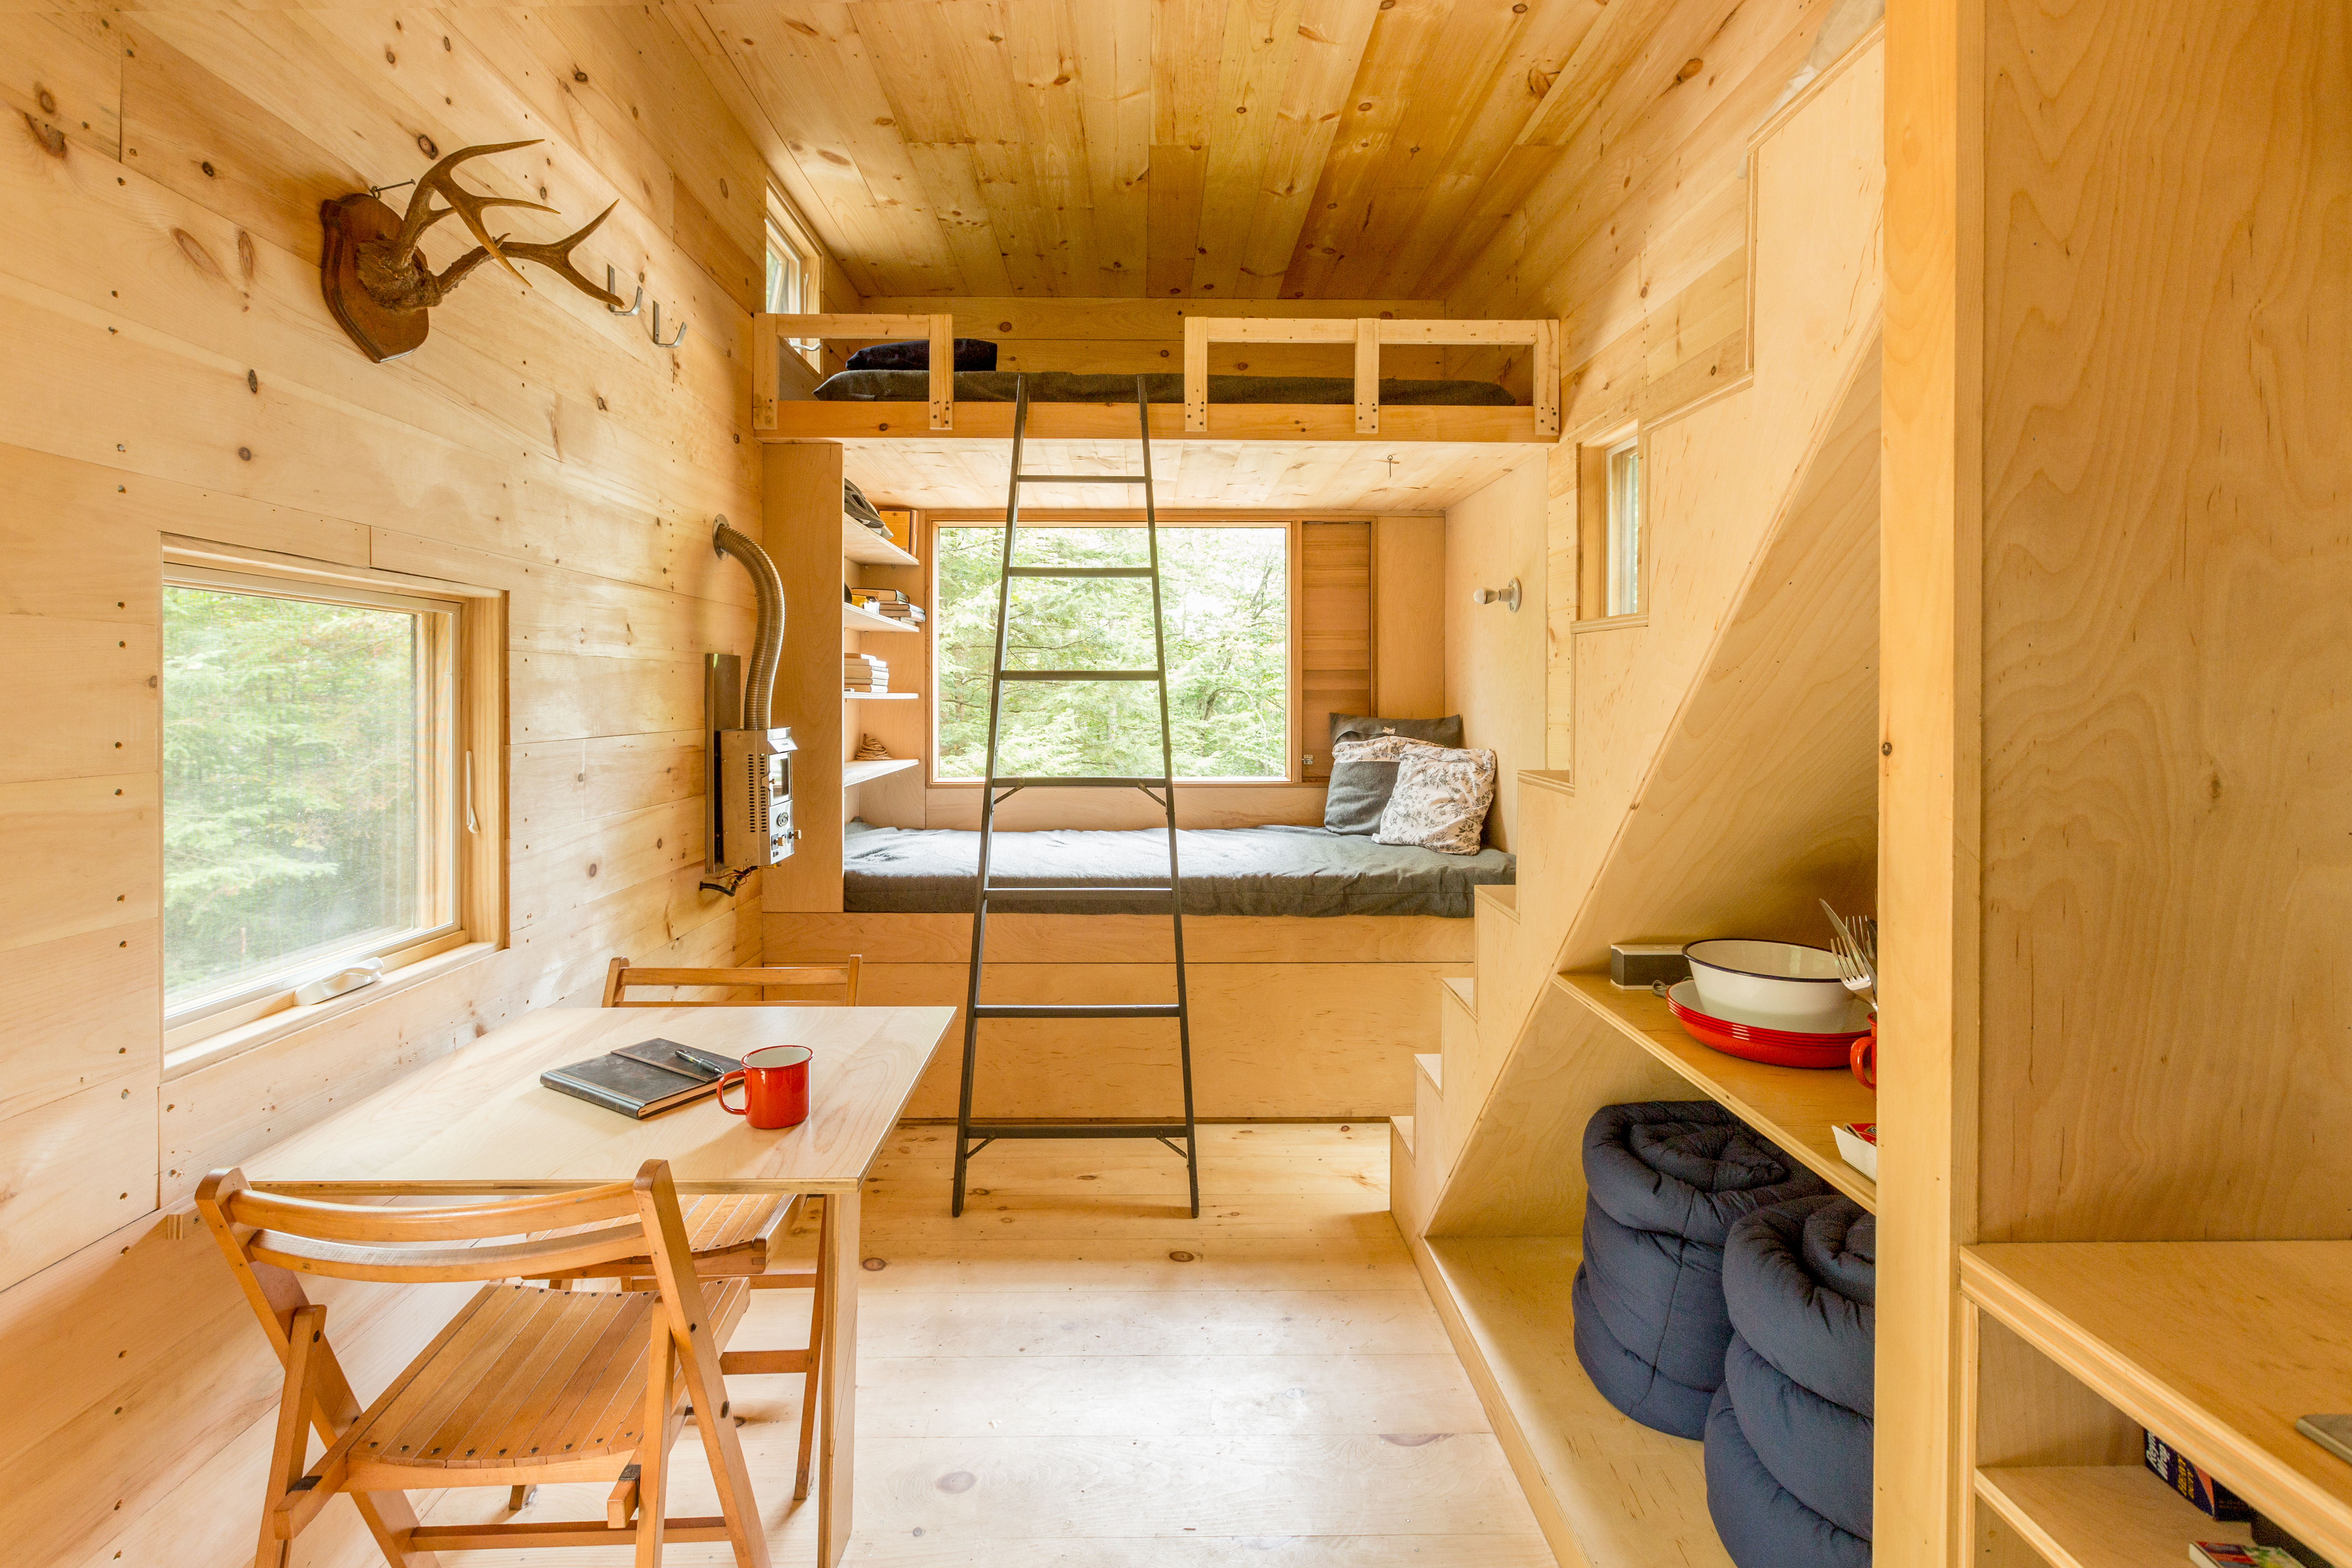 """Startup """"Getaway"""" encourages short vacations in tiny technology"""